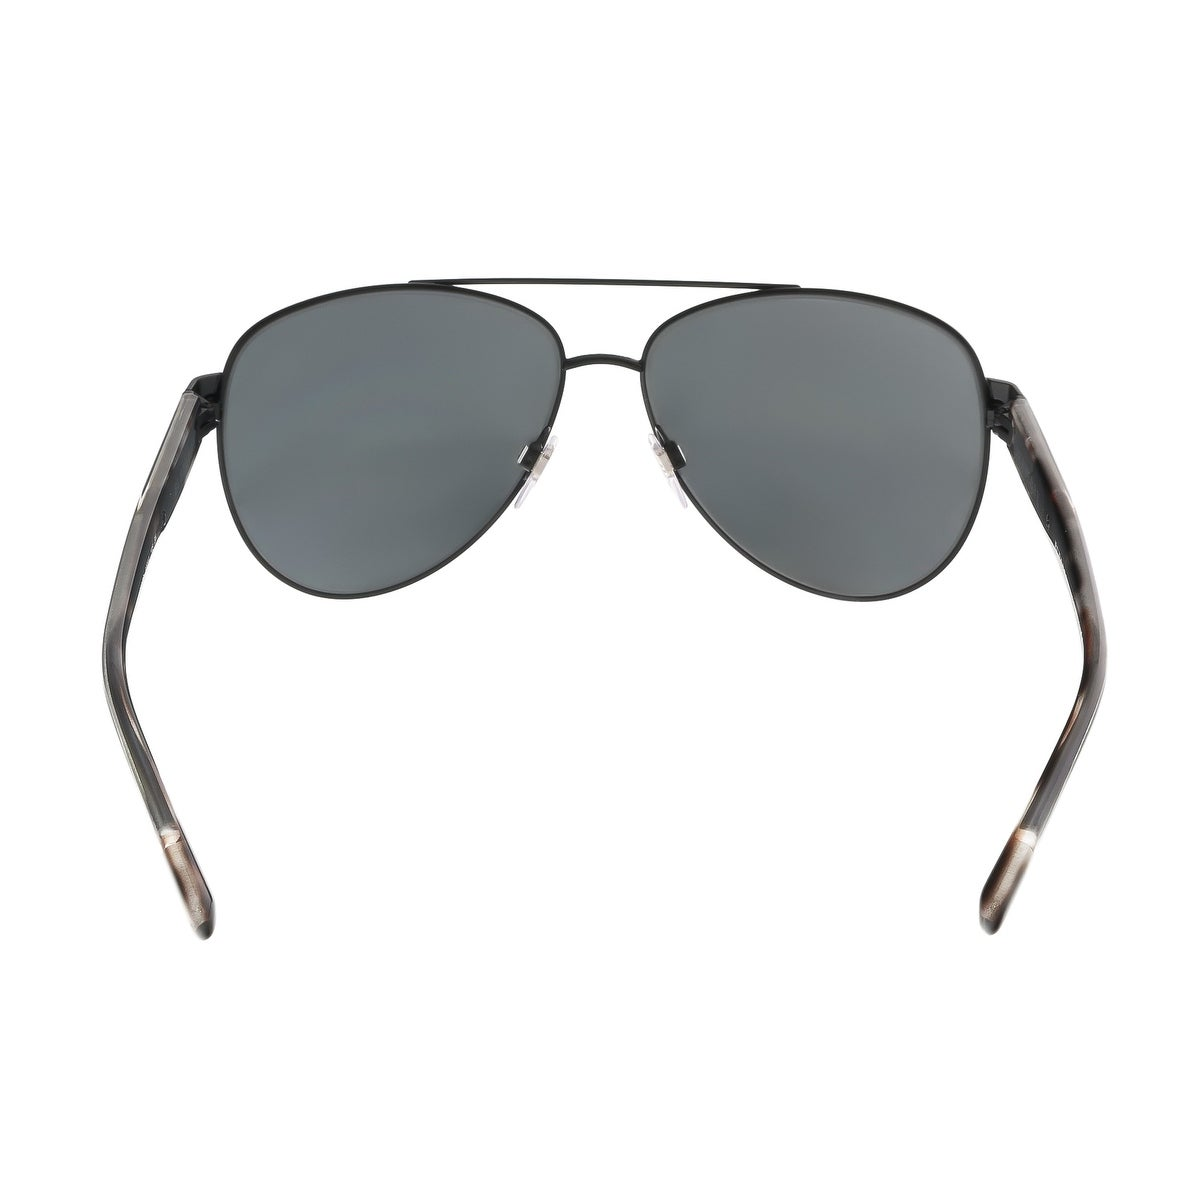 3d7607121bae Shop Burberry BE3084 122887 Matte Black Check Aviator Sunglasses - Free  Shipping Today - Overstock - 15408990